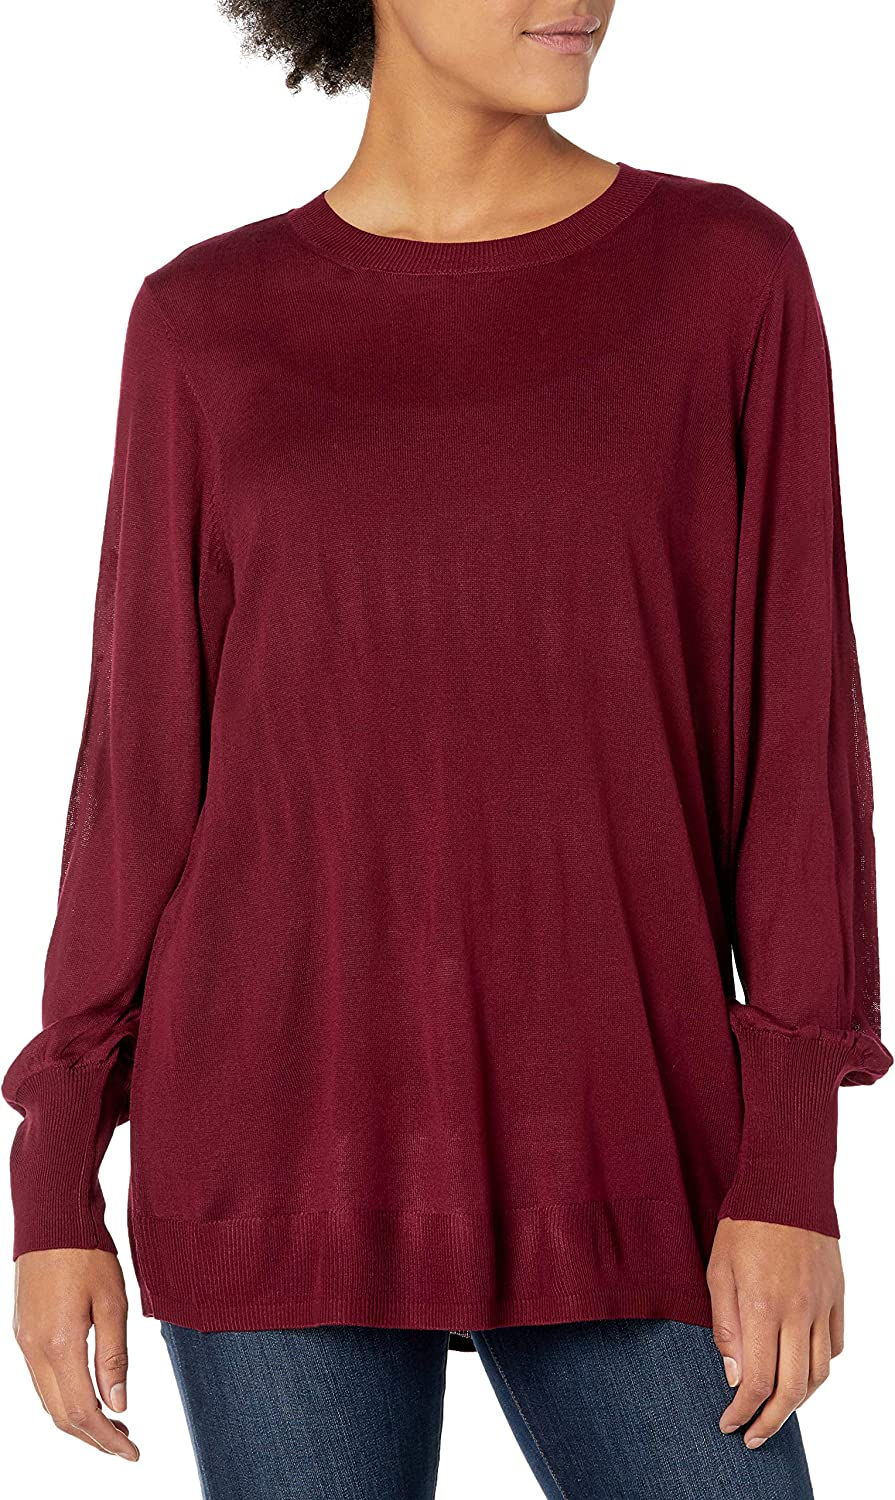 City Chic Women's Apparel Women's Plus Size Sheer Crew Neck Jumper with Rib Cuffed Sleeves